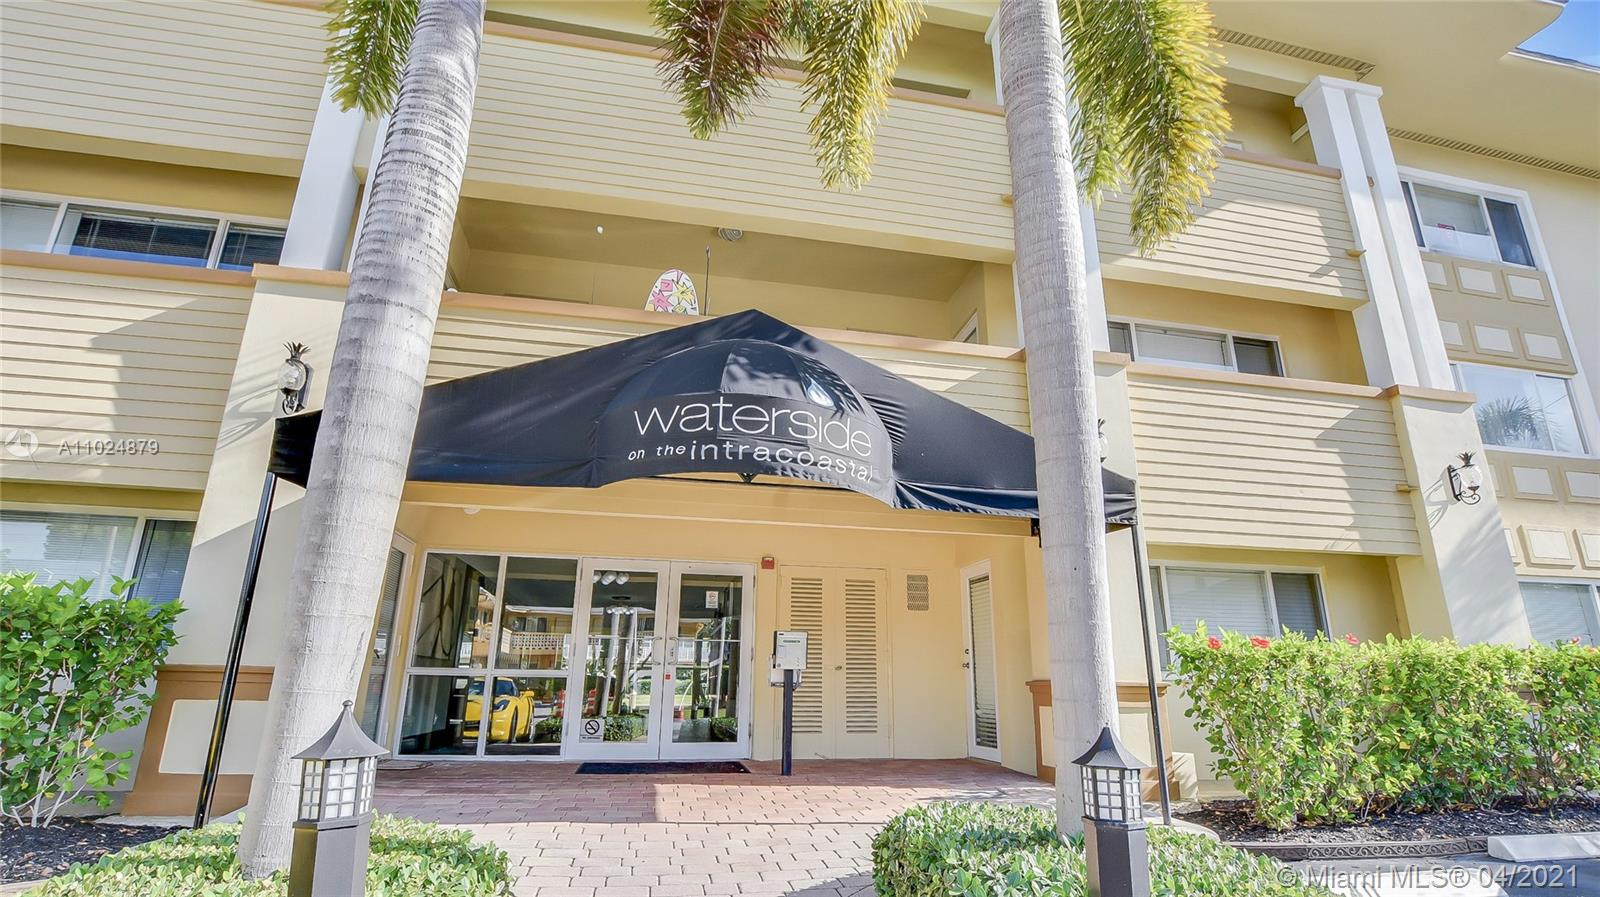 """In connection with a US Bankruptcy Trustee Sale. Property is sold """"As-Is,Where-Is"""" with no representations, warranties or guarantees of any kind, whether stated or implied by the Trustee and/or his professionals. Buyers must conduct their own due diligence. Please contact listing agent for sale procedures and details. Beautiful intracoastal and canal views from this top floor unit. The unit has impact doors and windows, granite countertops, and stainless steel appliances. Located close to the beach, shops, and restaurants. Pet friendly building."""